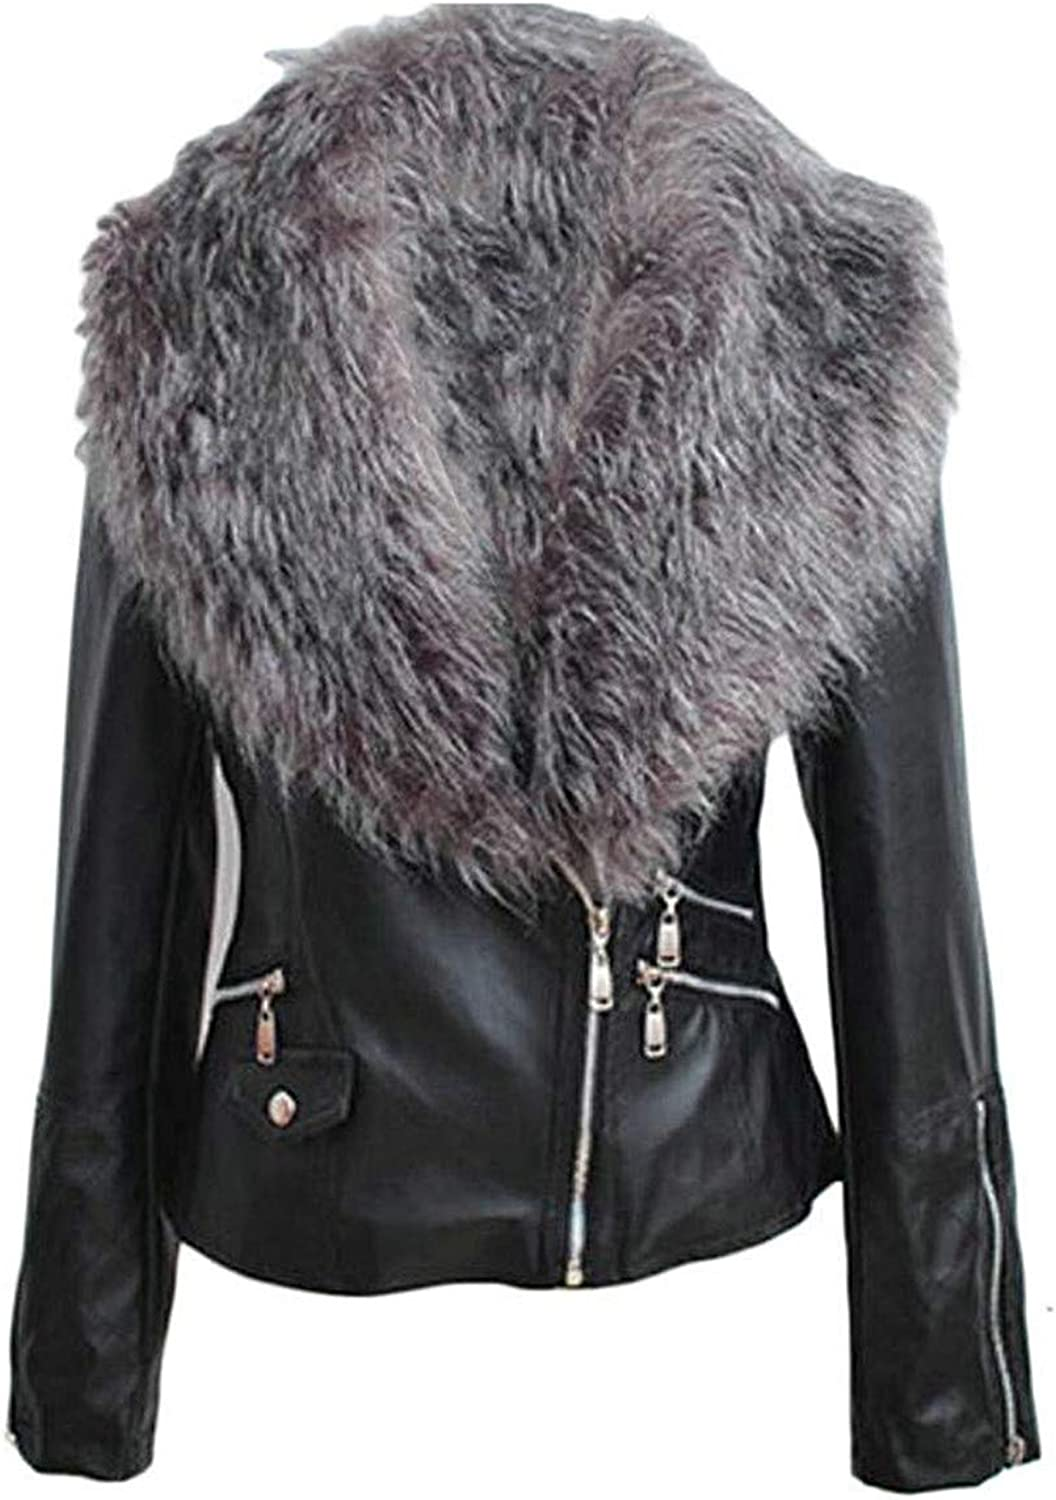 Zhdyhgsd Women's Fashion Faux Leather Faux Leather Motorcycle Jacket